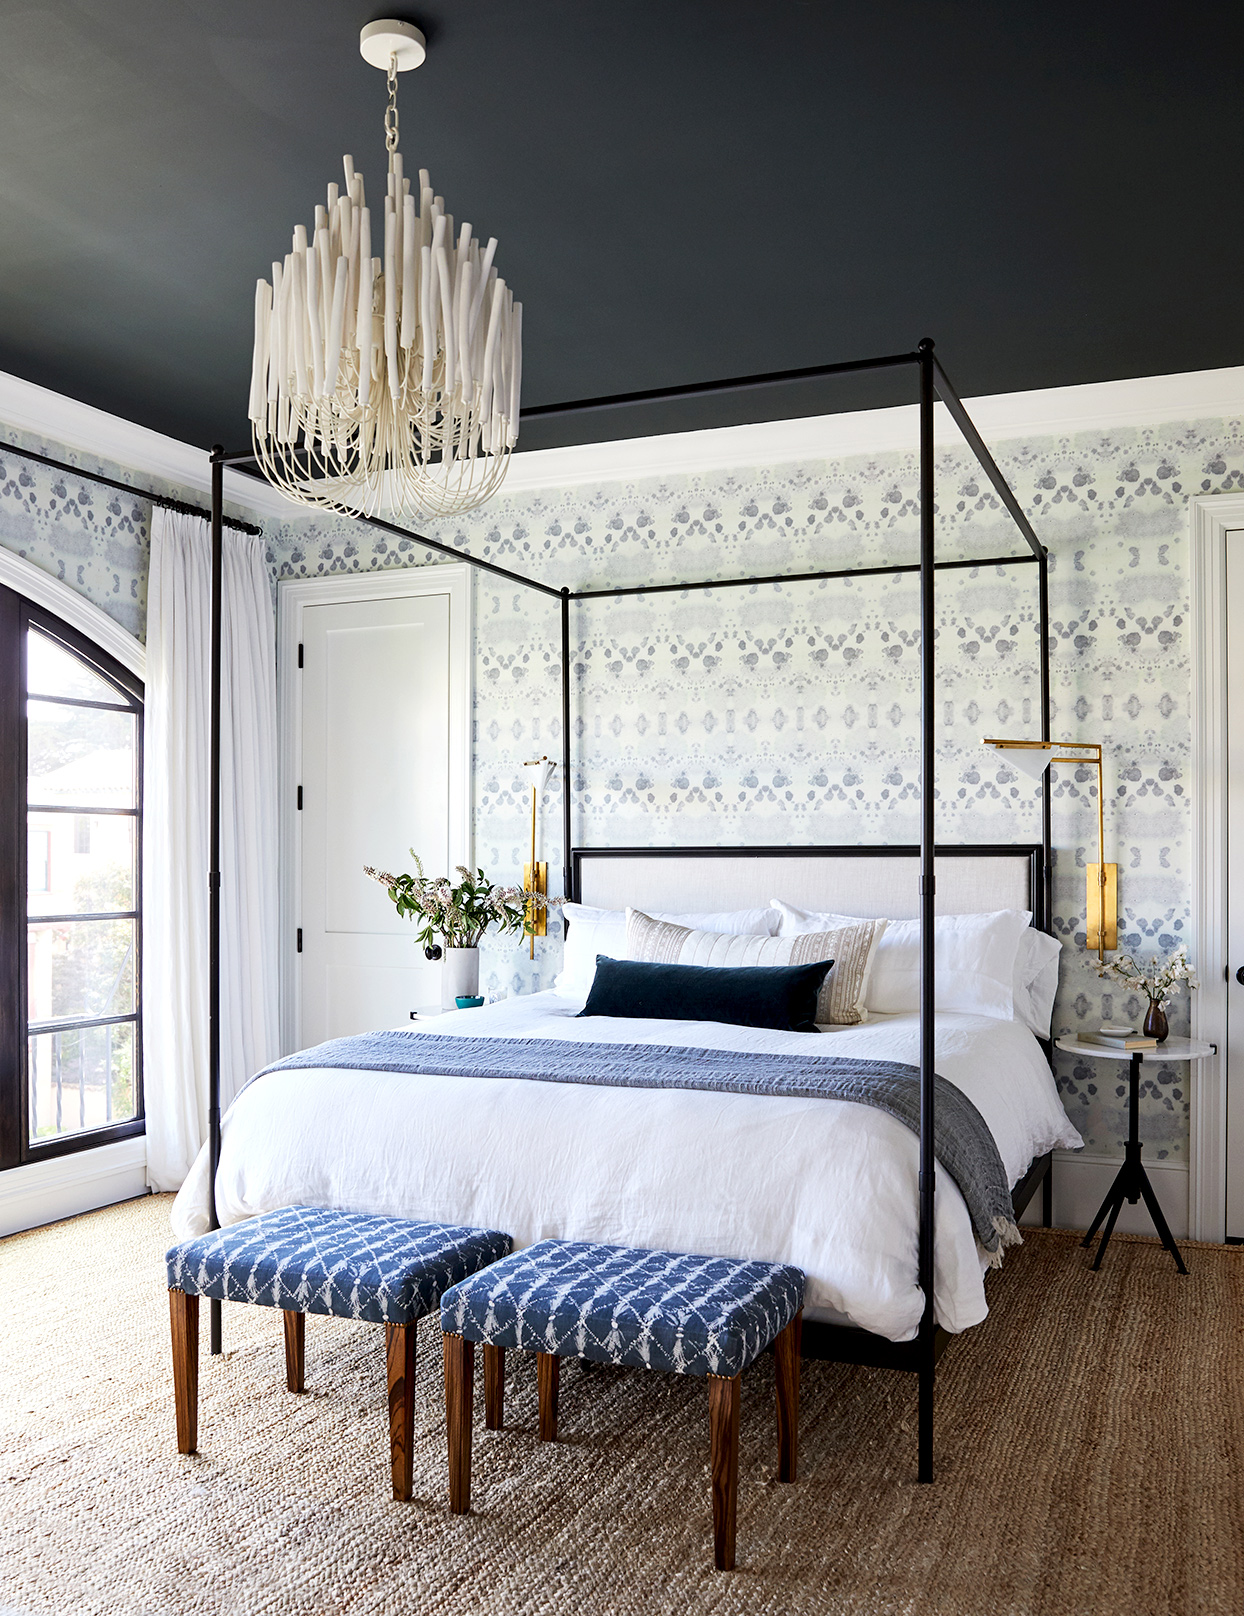 Bedroom with textured wallpaper and blue and white bed